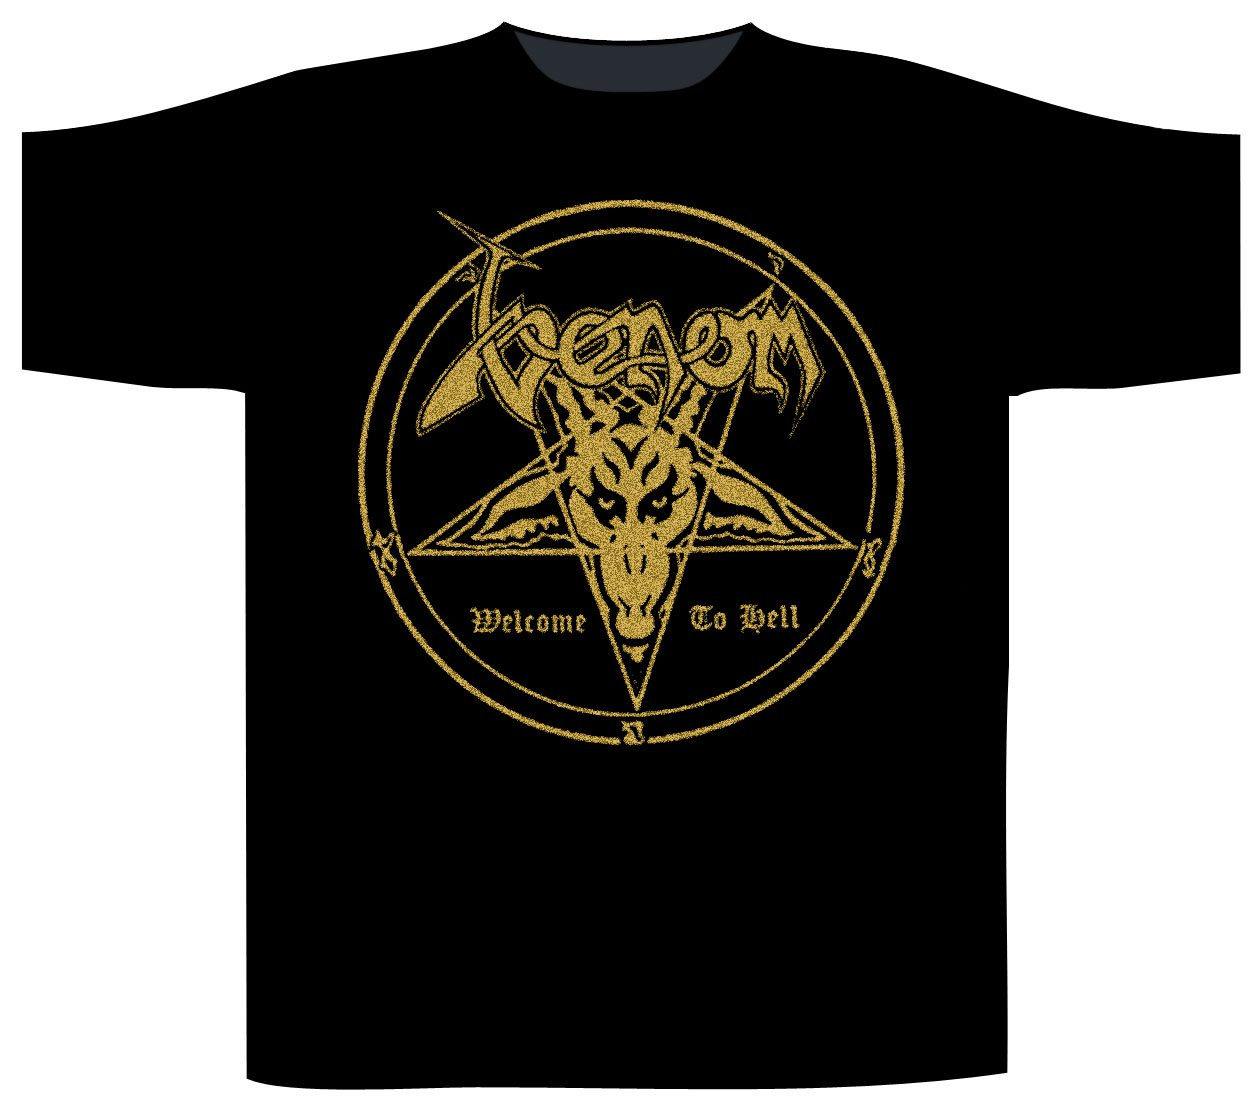 Kleidung & Accessoires Welcome To Hell T-shirt Venom